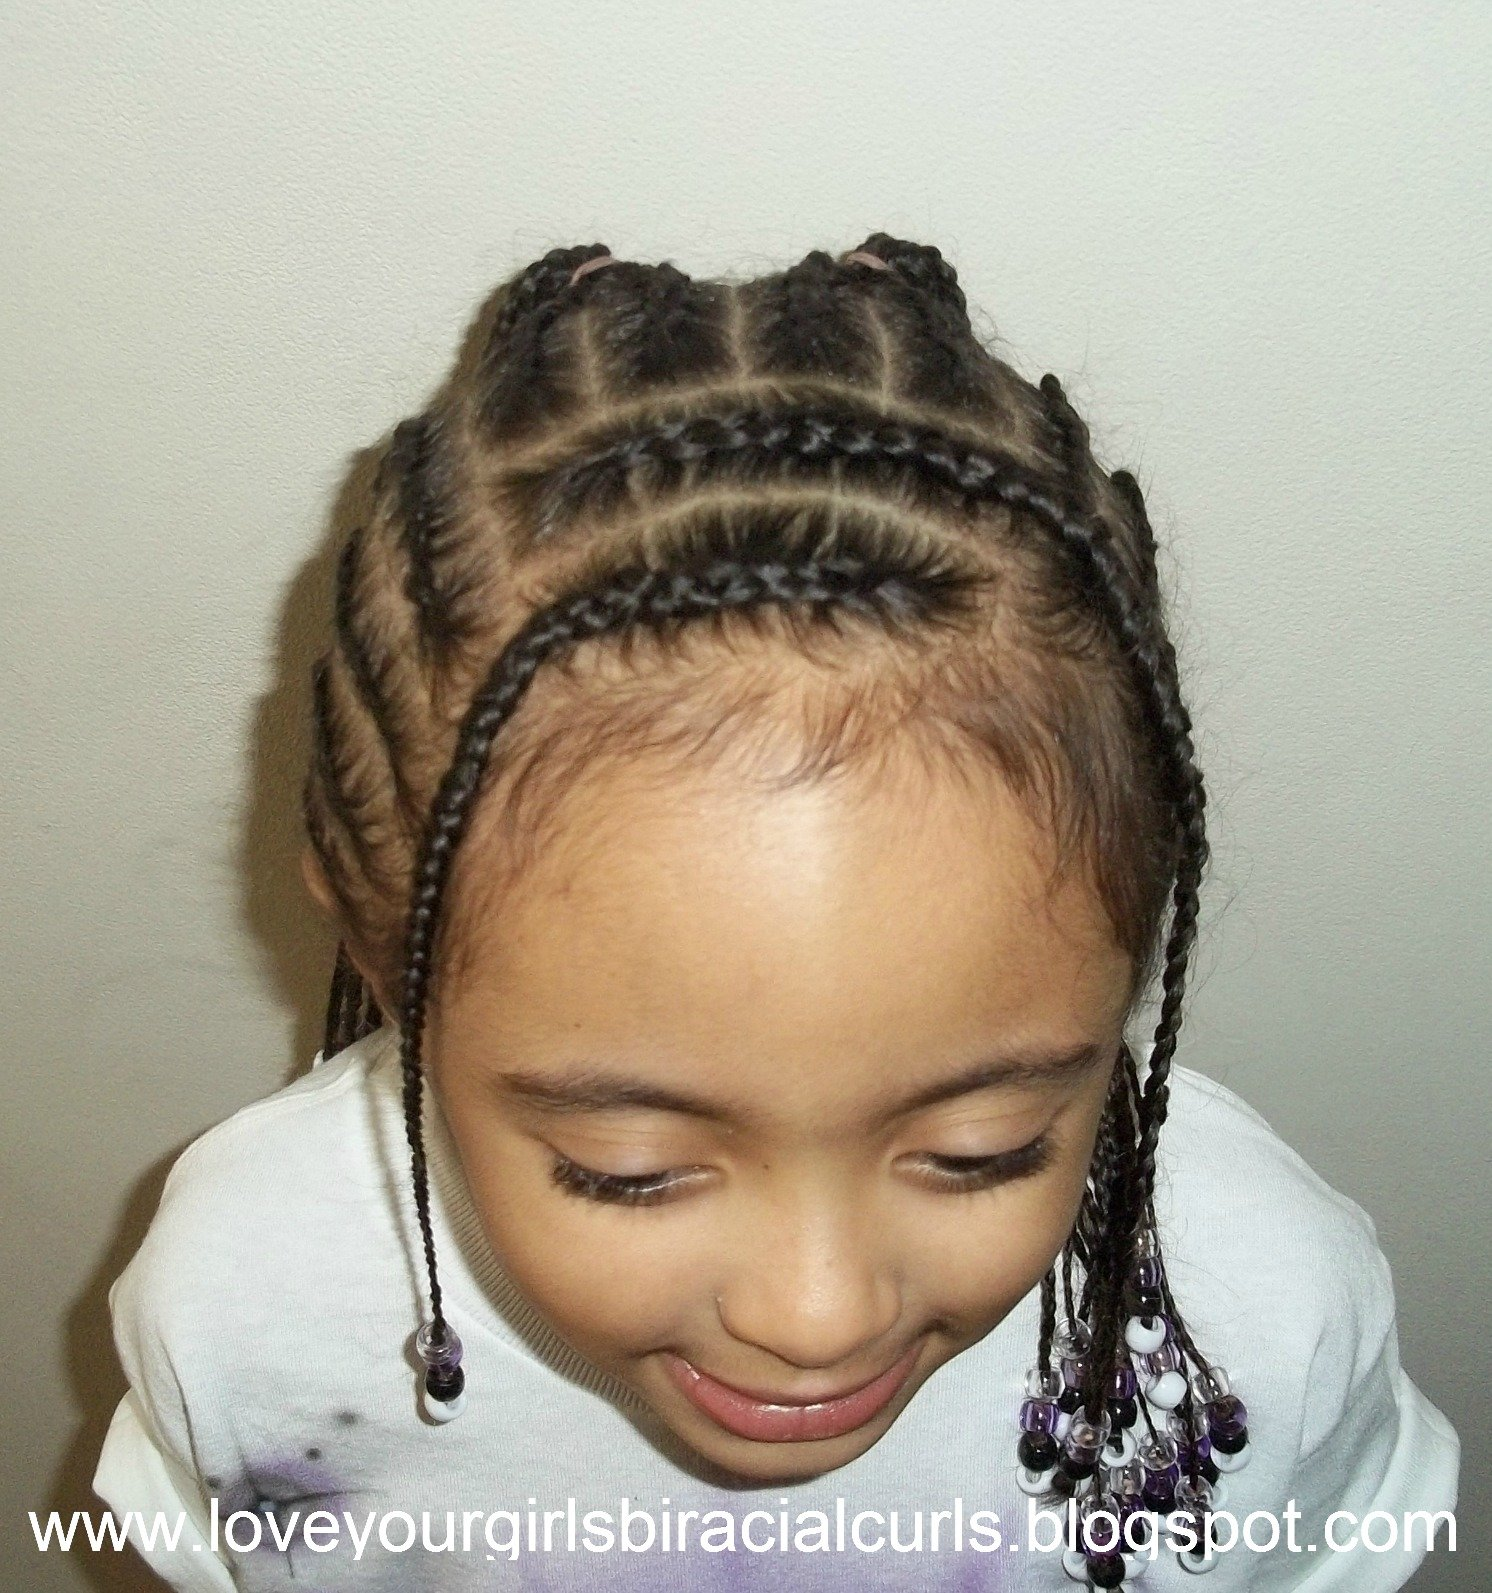 The Best Love Your Girls Biracial Curls Diva R S Hairstyle From Pictures